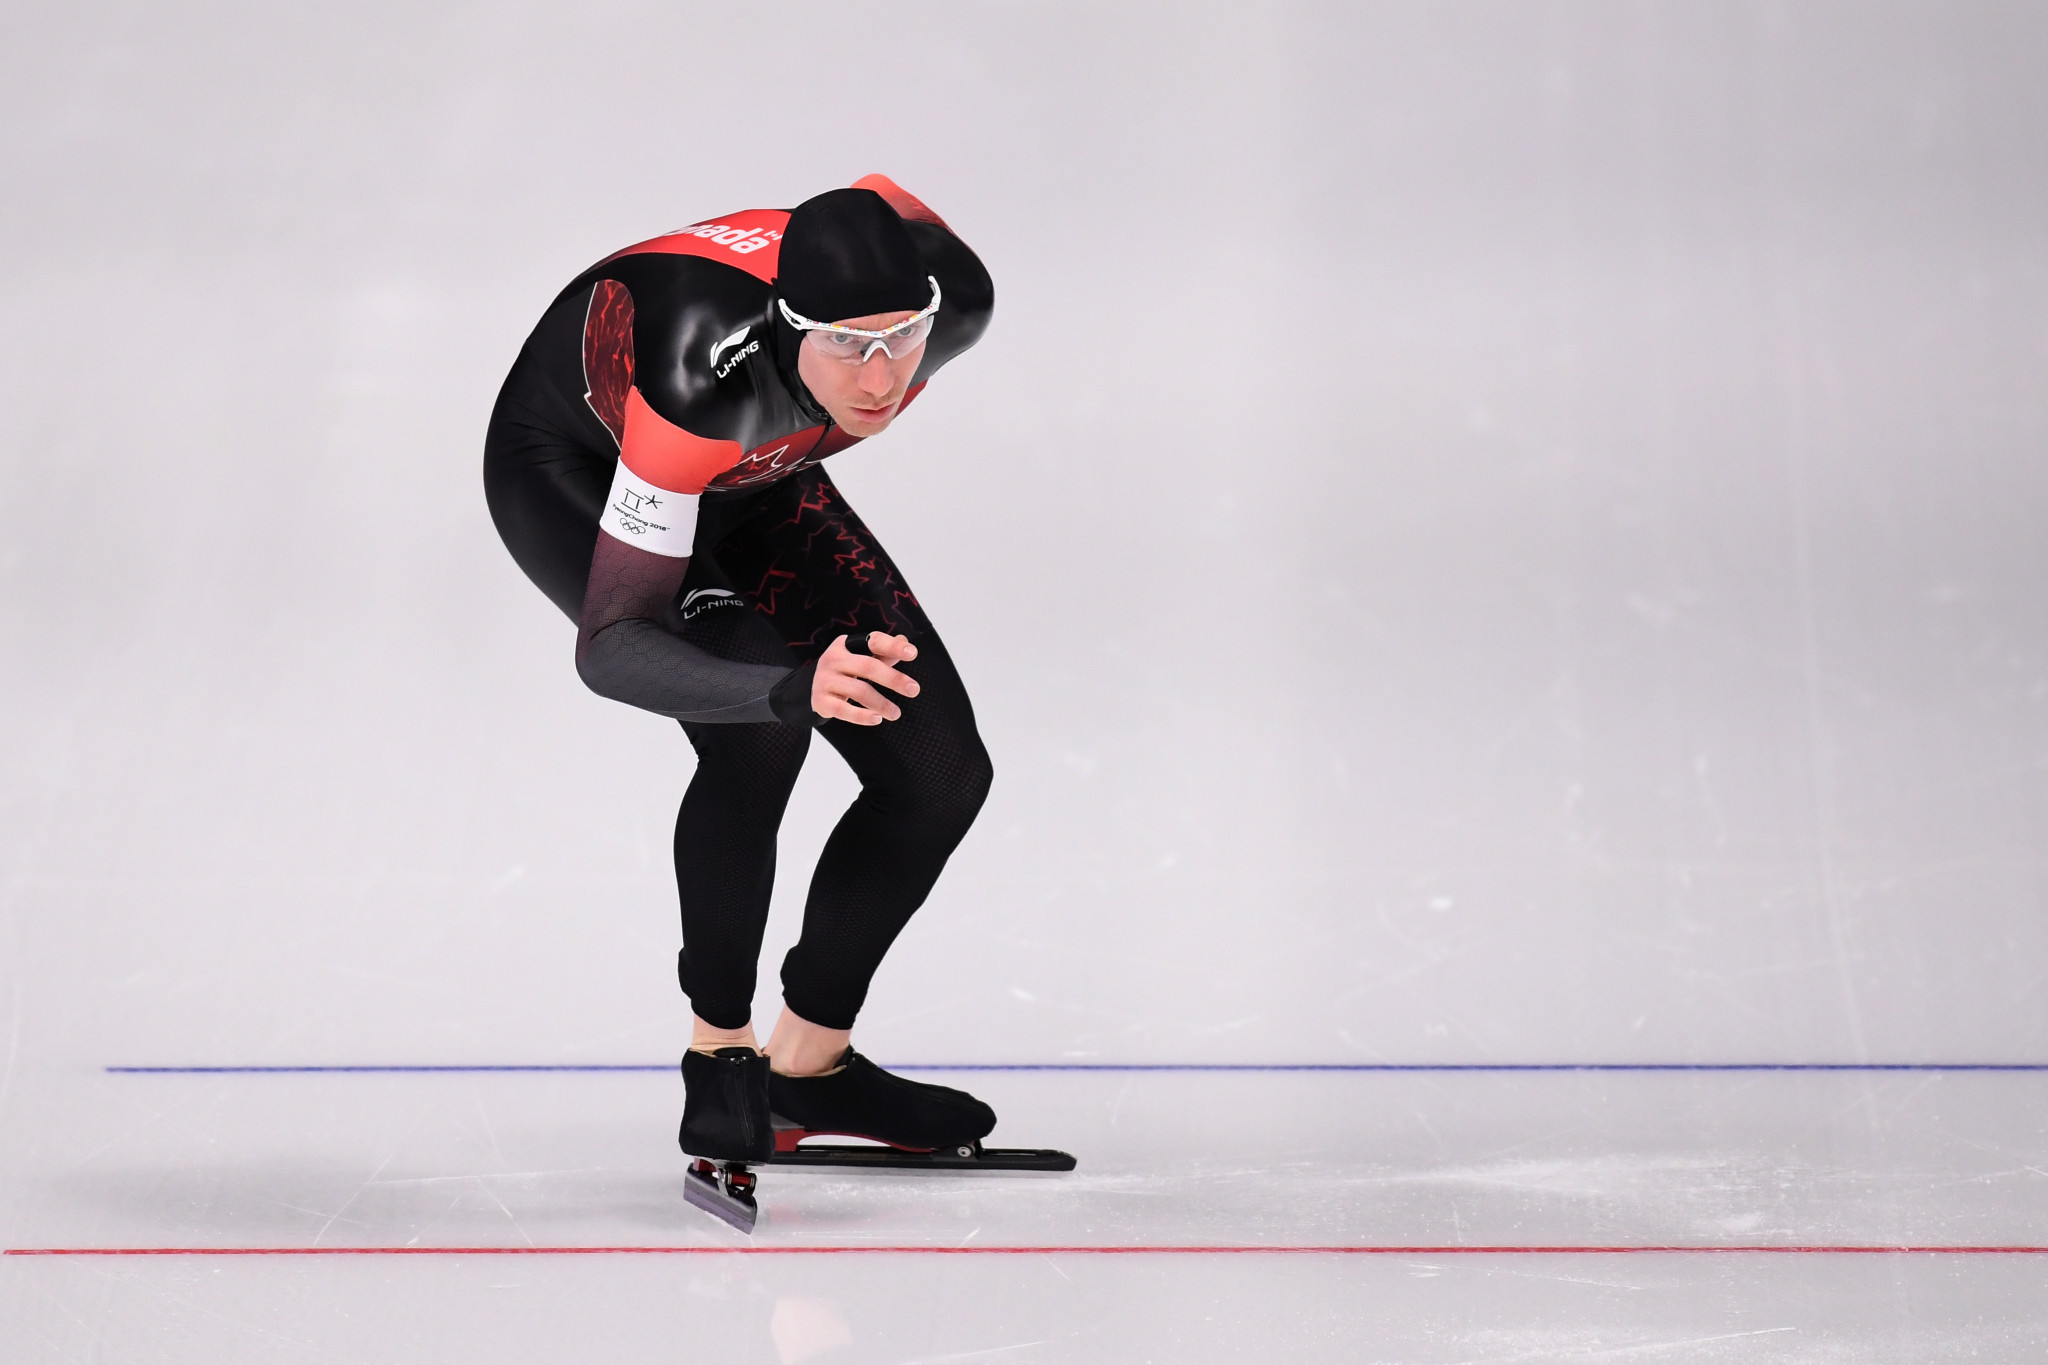 Canada's world record holder Ted-Jan Bloemen won the silver medal ©Getty Images